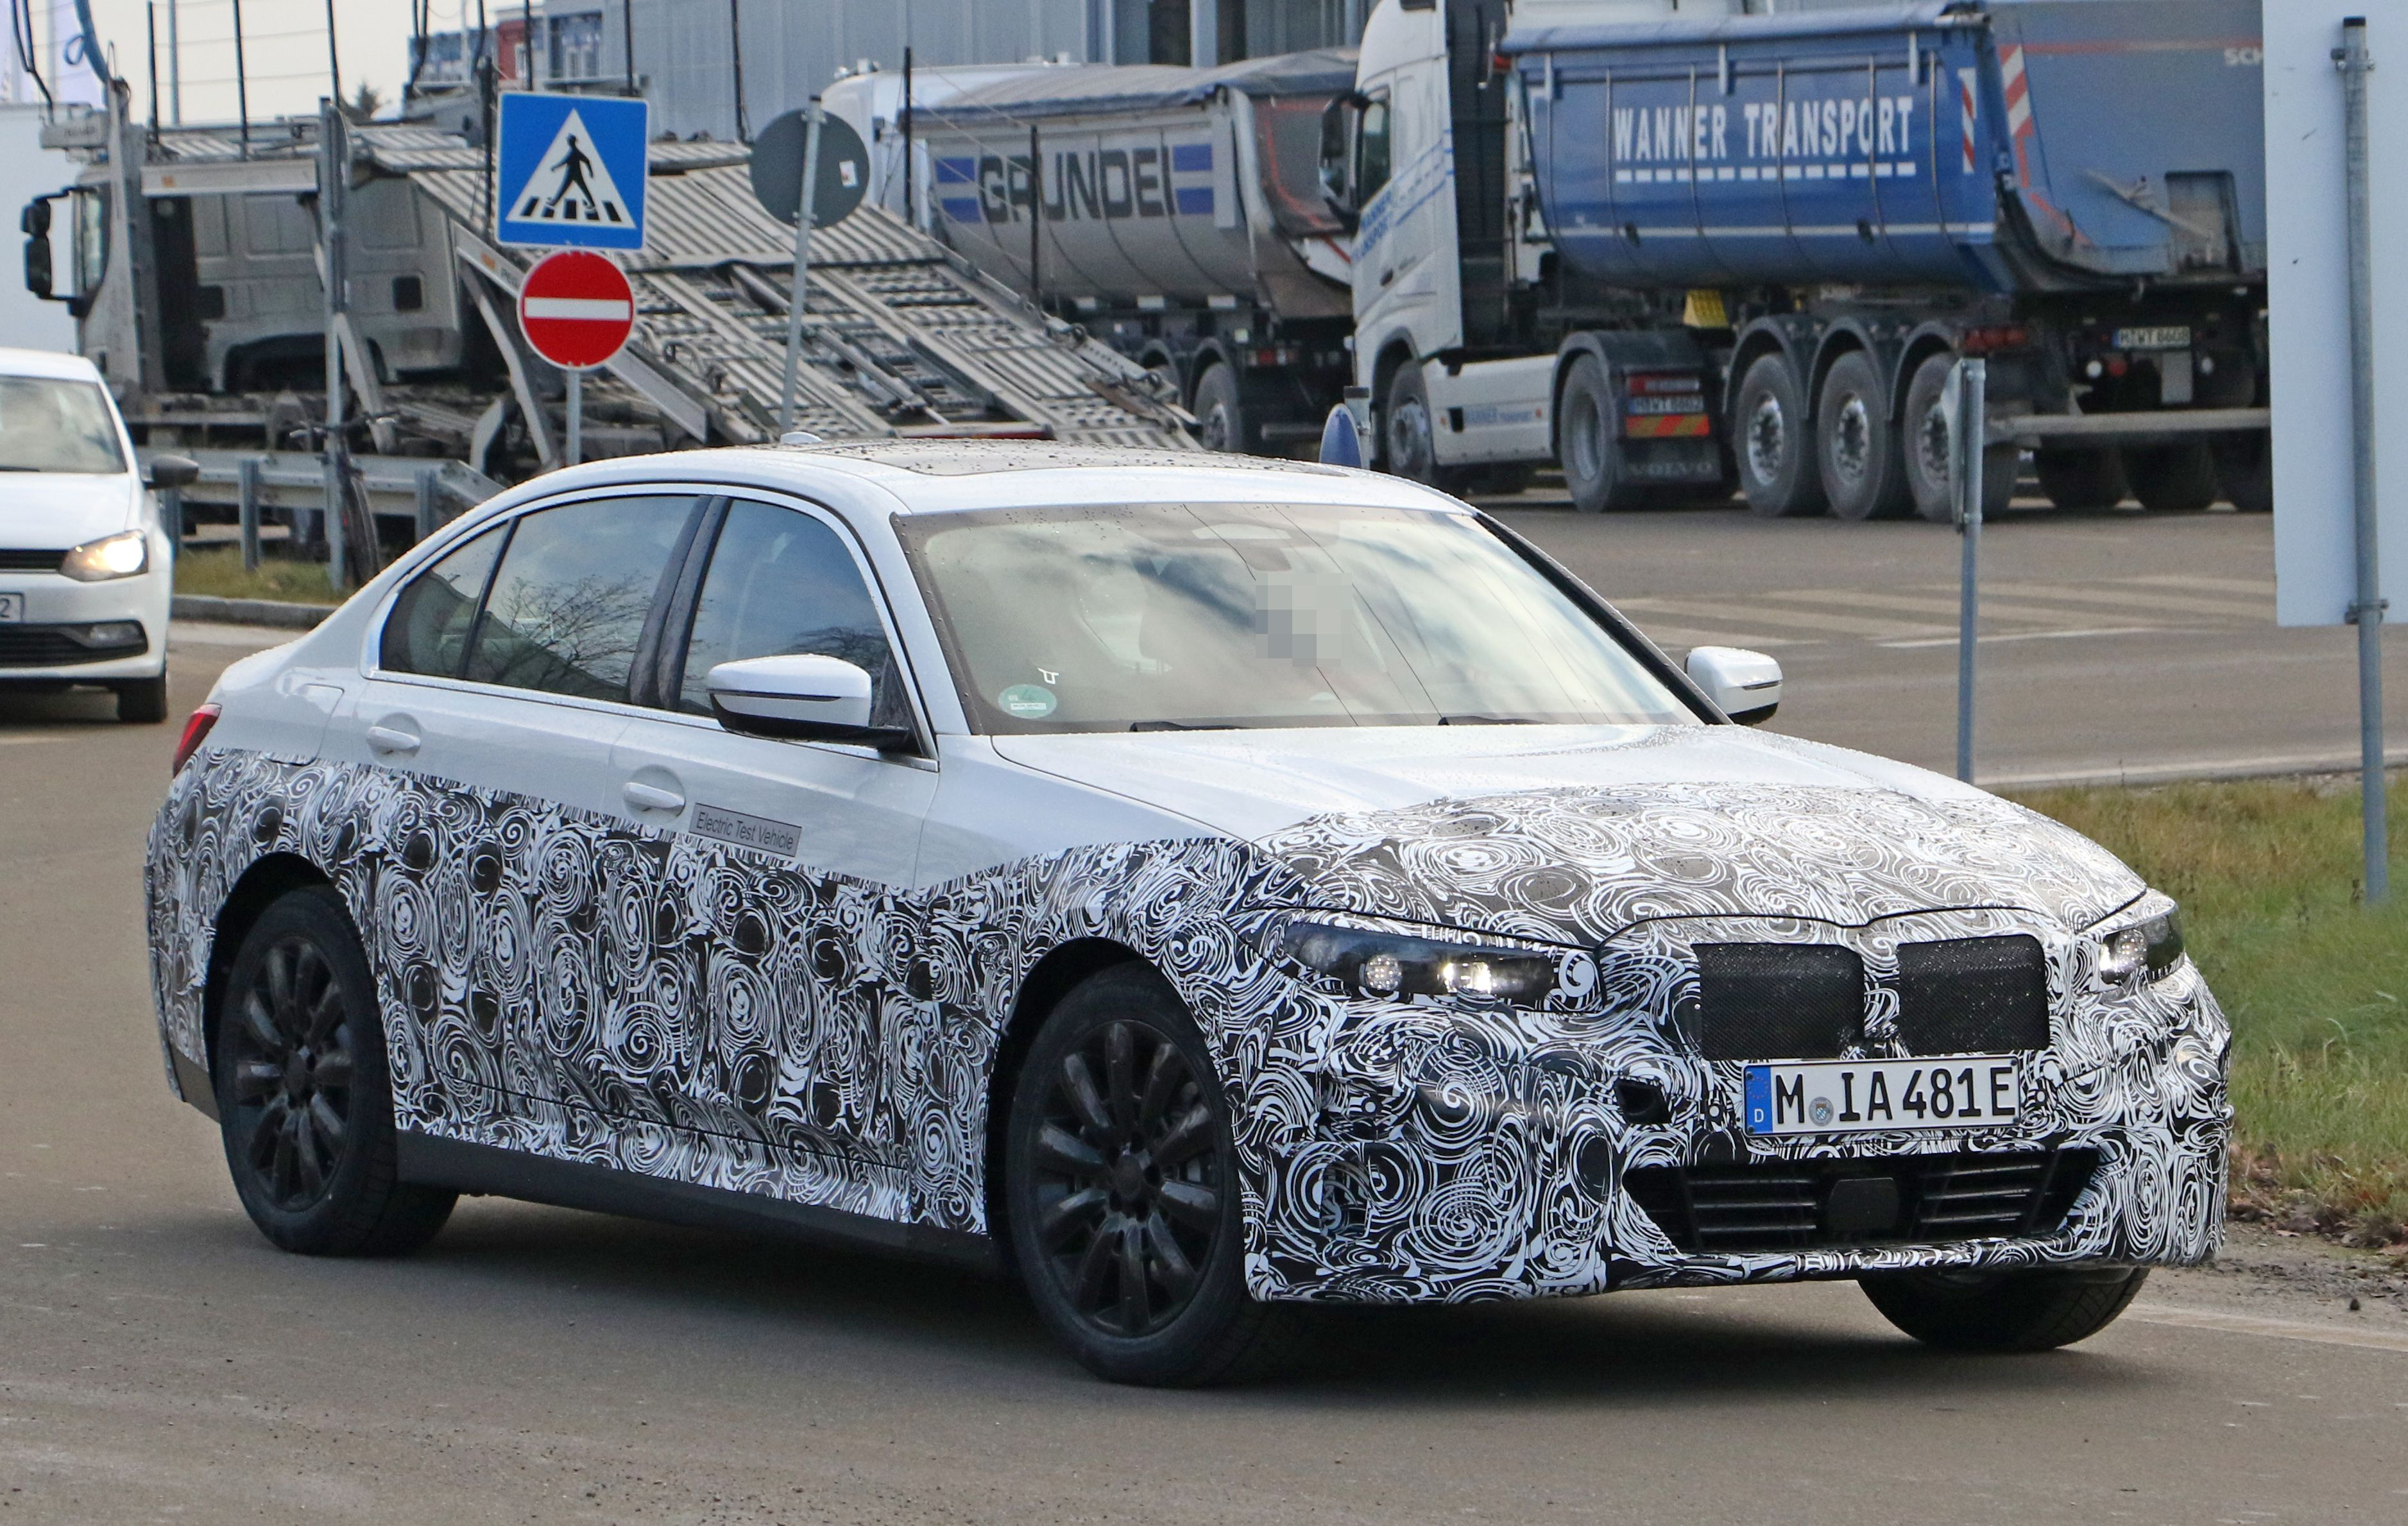 2022 Bmw 3 Series Electric In 2020 Bmw 3 Series Bmw Car Purchase